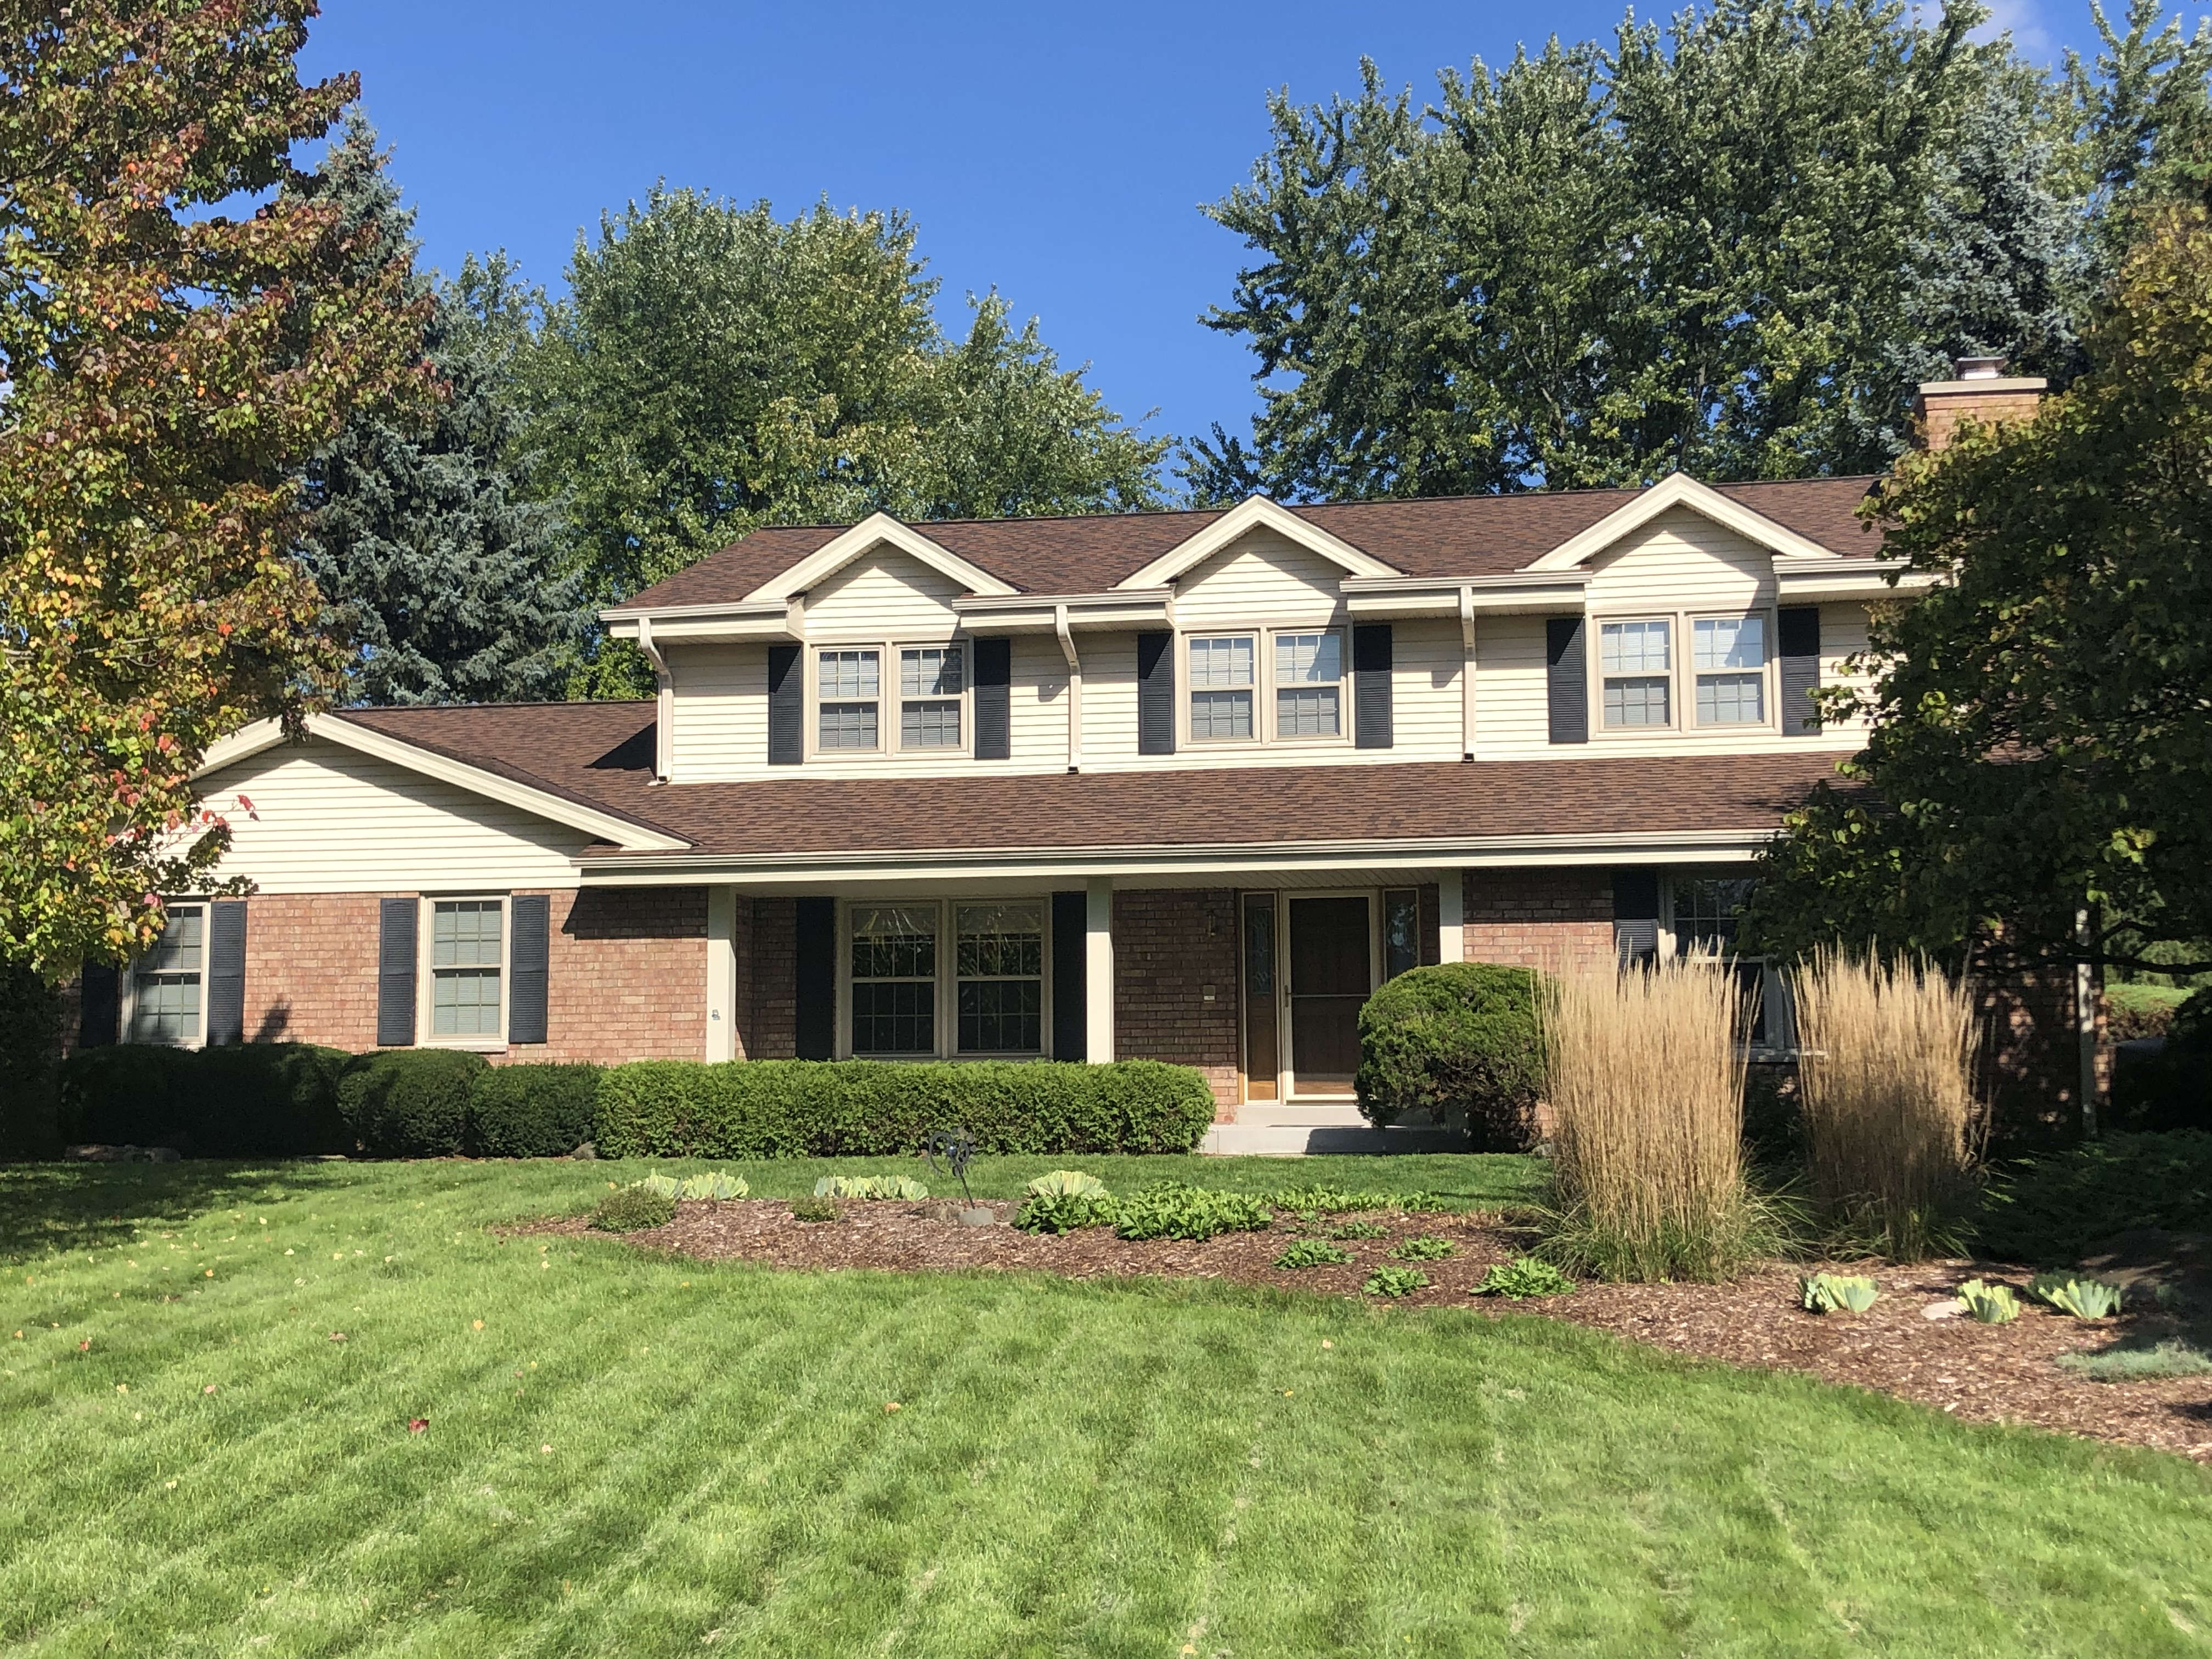 Wisconsin Roofing LLC | Brookfield | Upgraded Ventilation Unblocked Soffit Vents | Baffled Intake Chutes | CertainTeed Landmark Burnt Sienna Shingles | Front